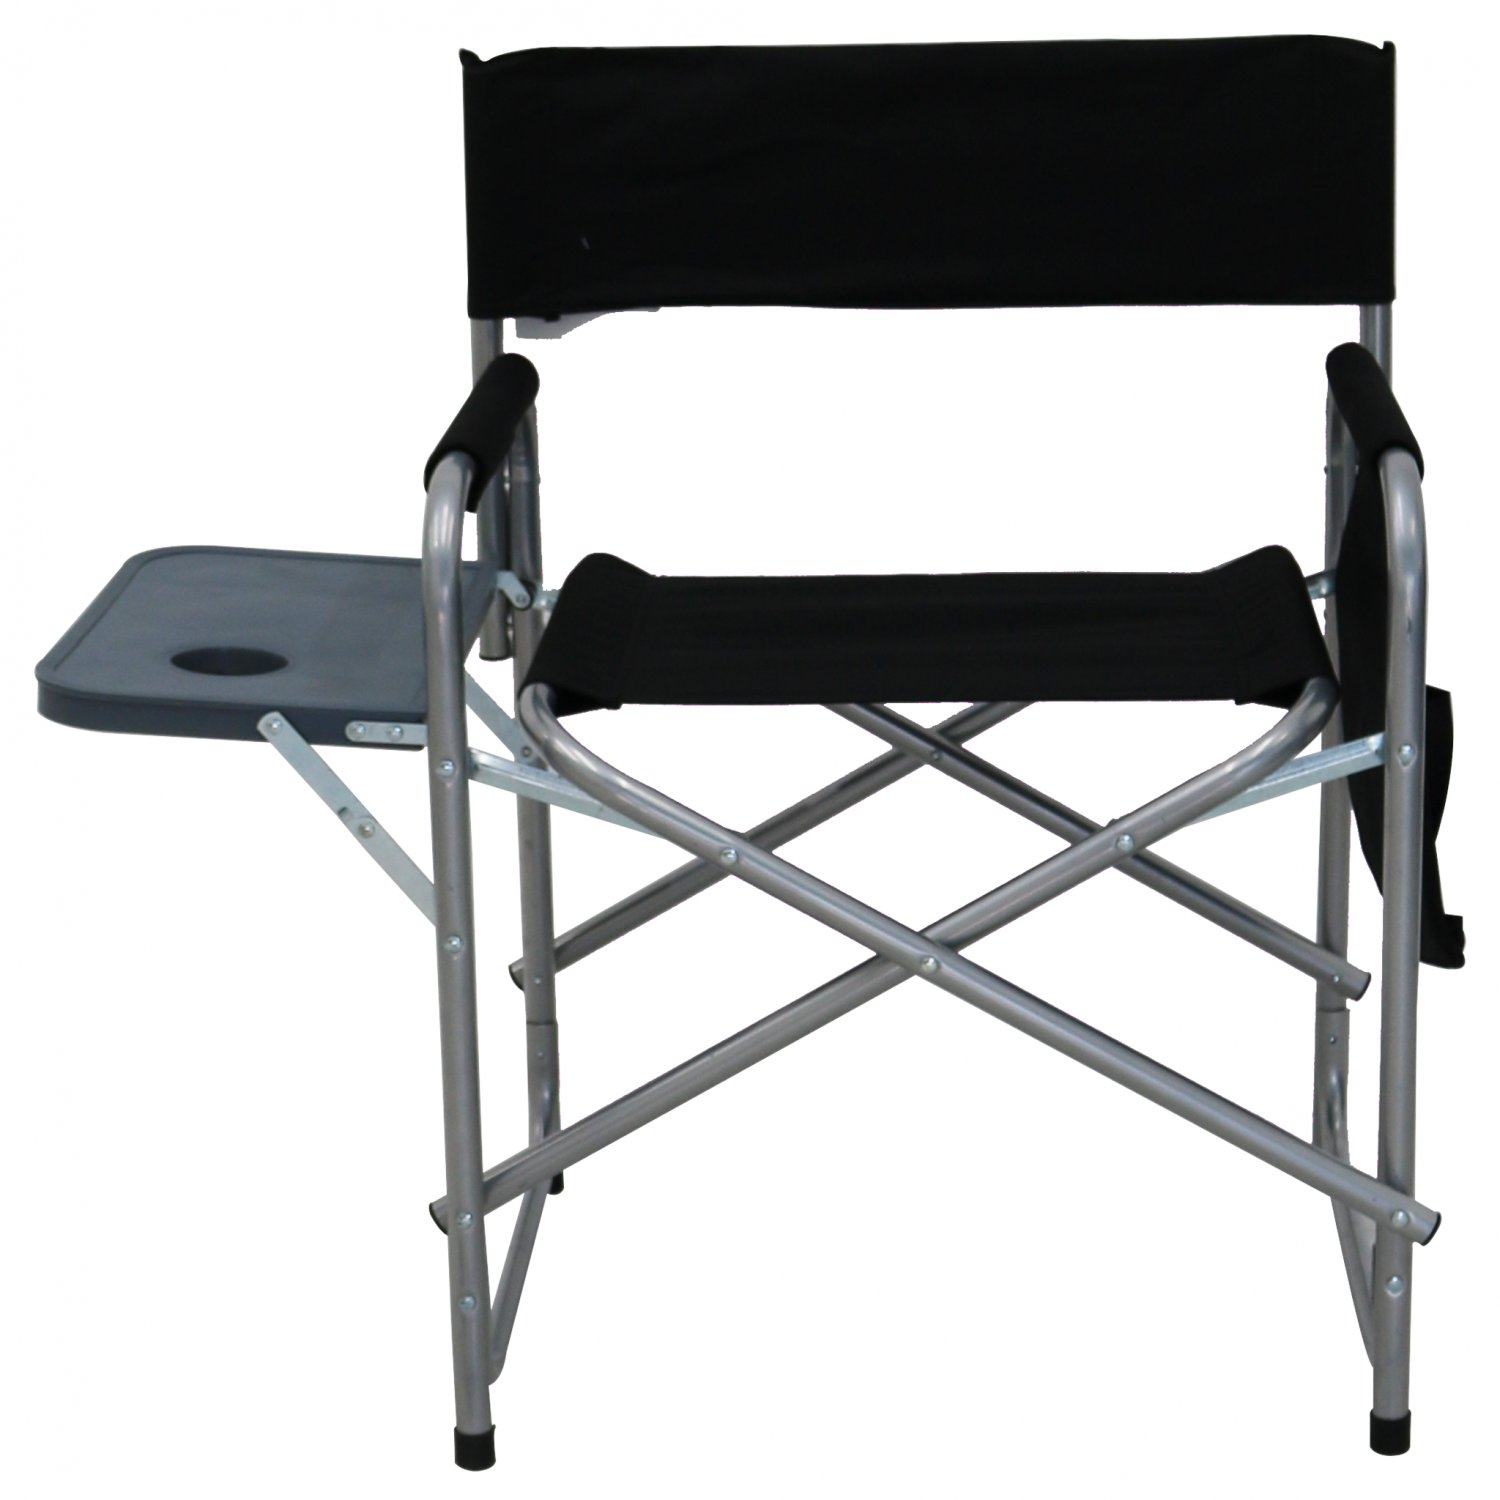 Folding Director Chair Folding Lightweight Outdoor Portable Directors Camping Chair